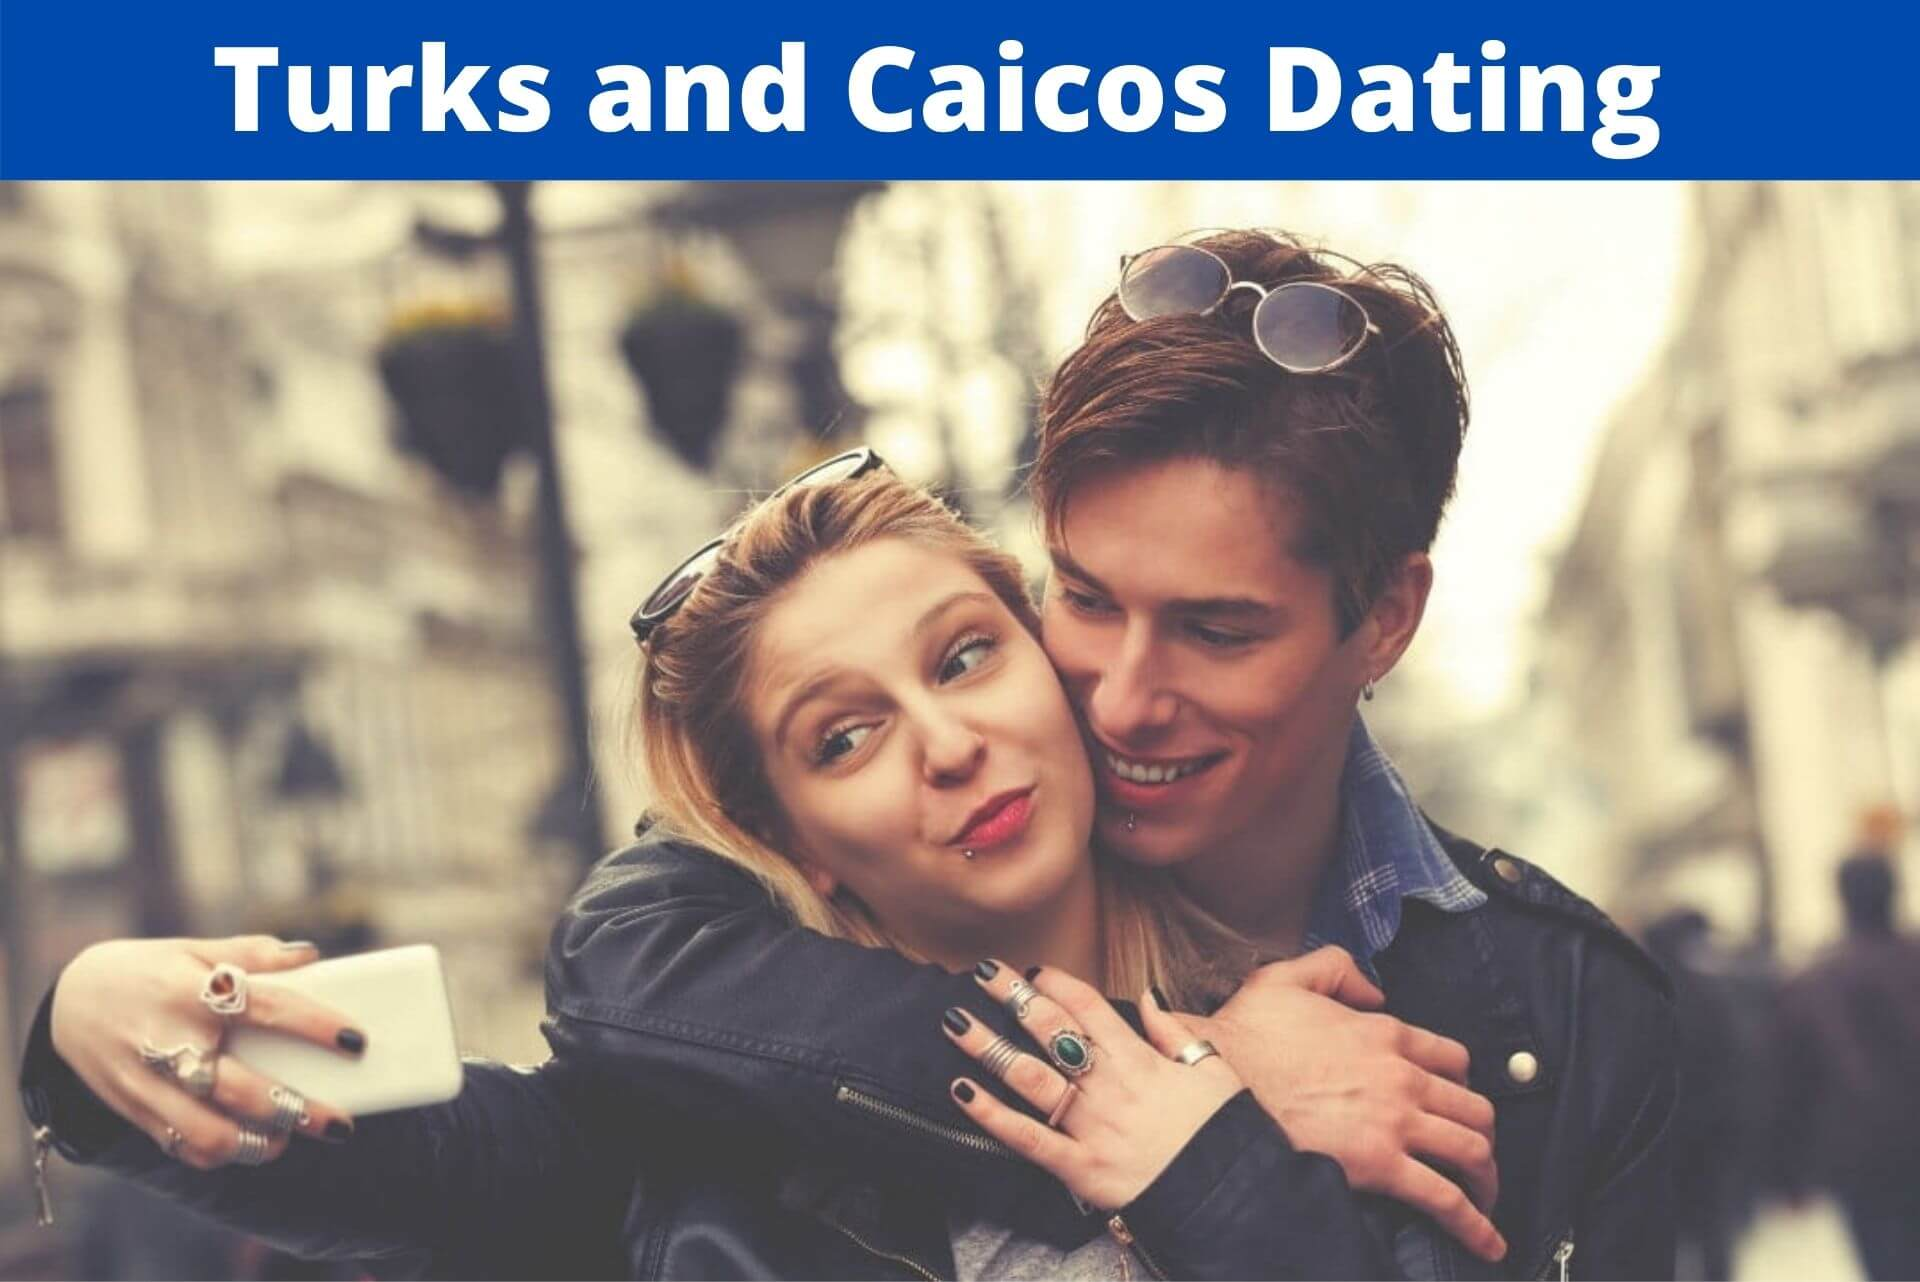 Top 7 Turks and Caicos Dating Sites